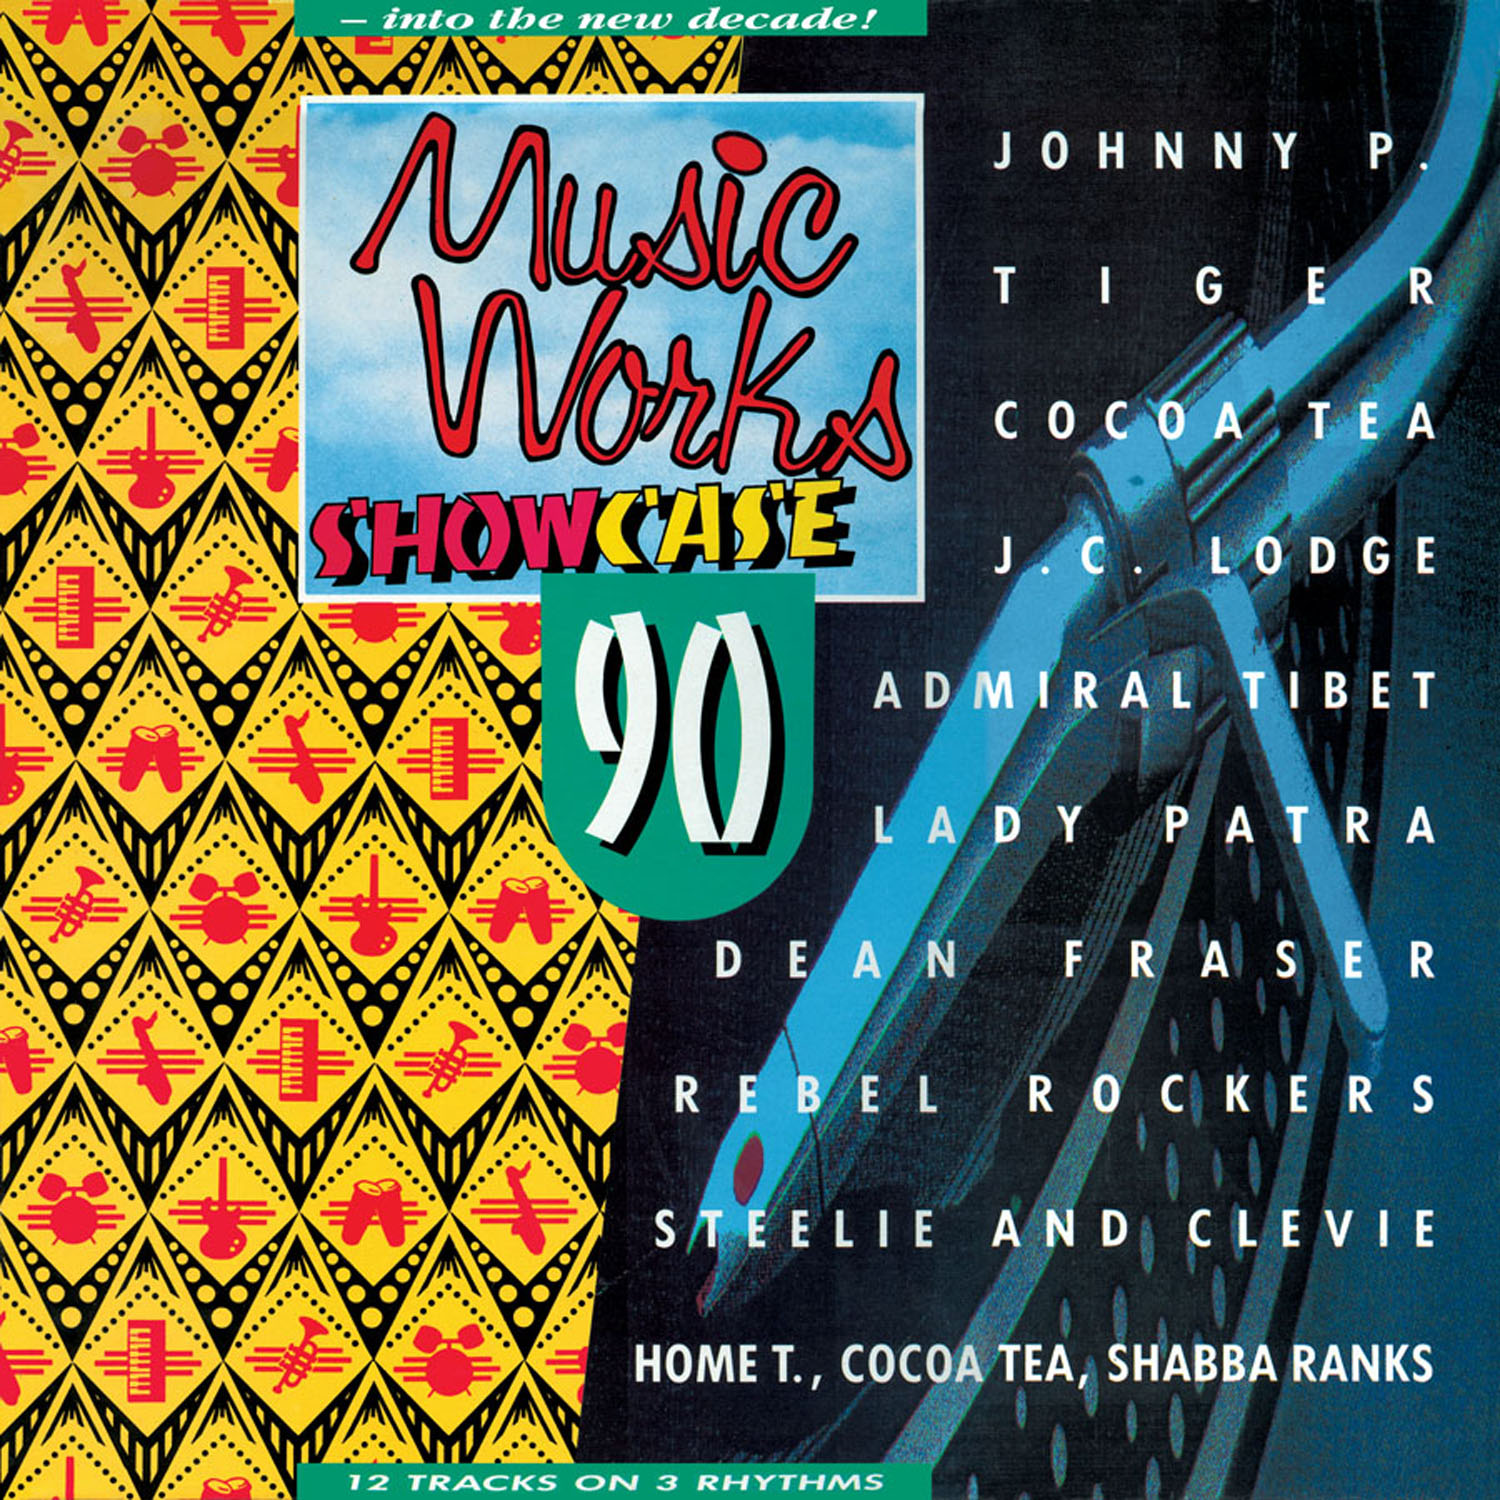 Music Works Showcase 90